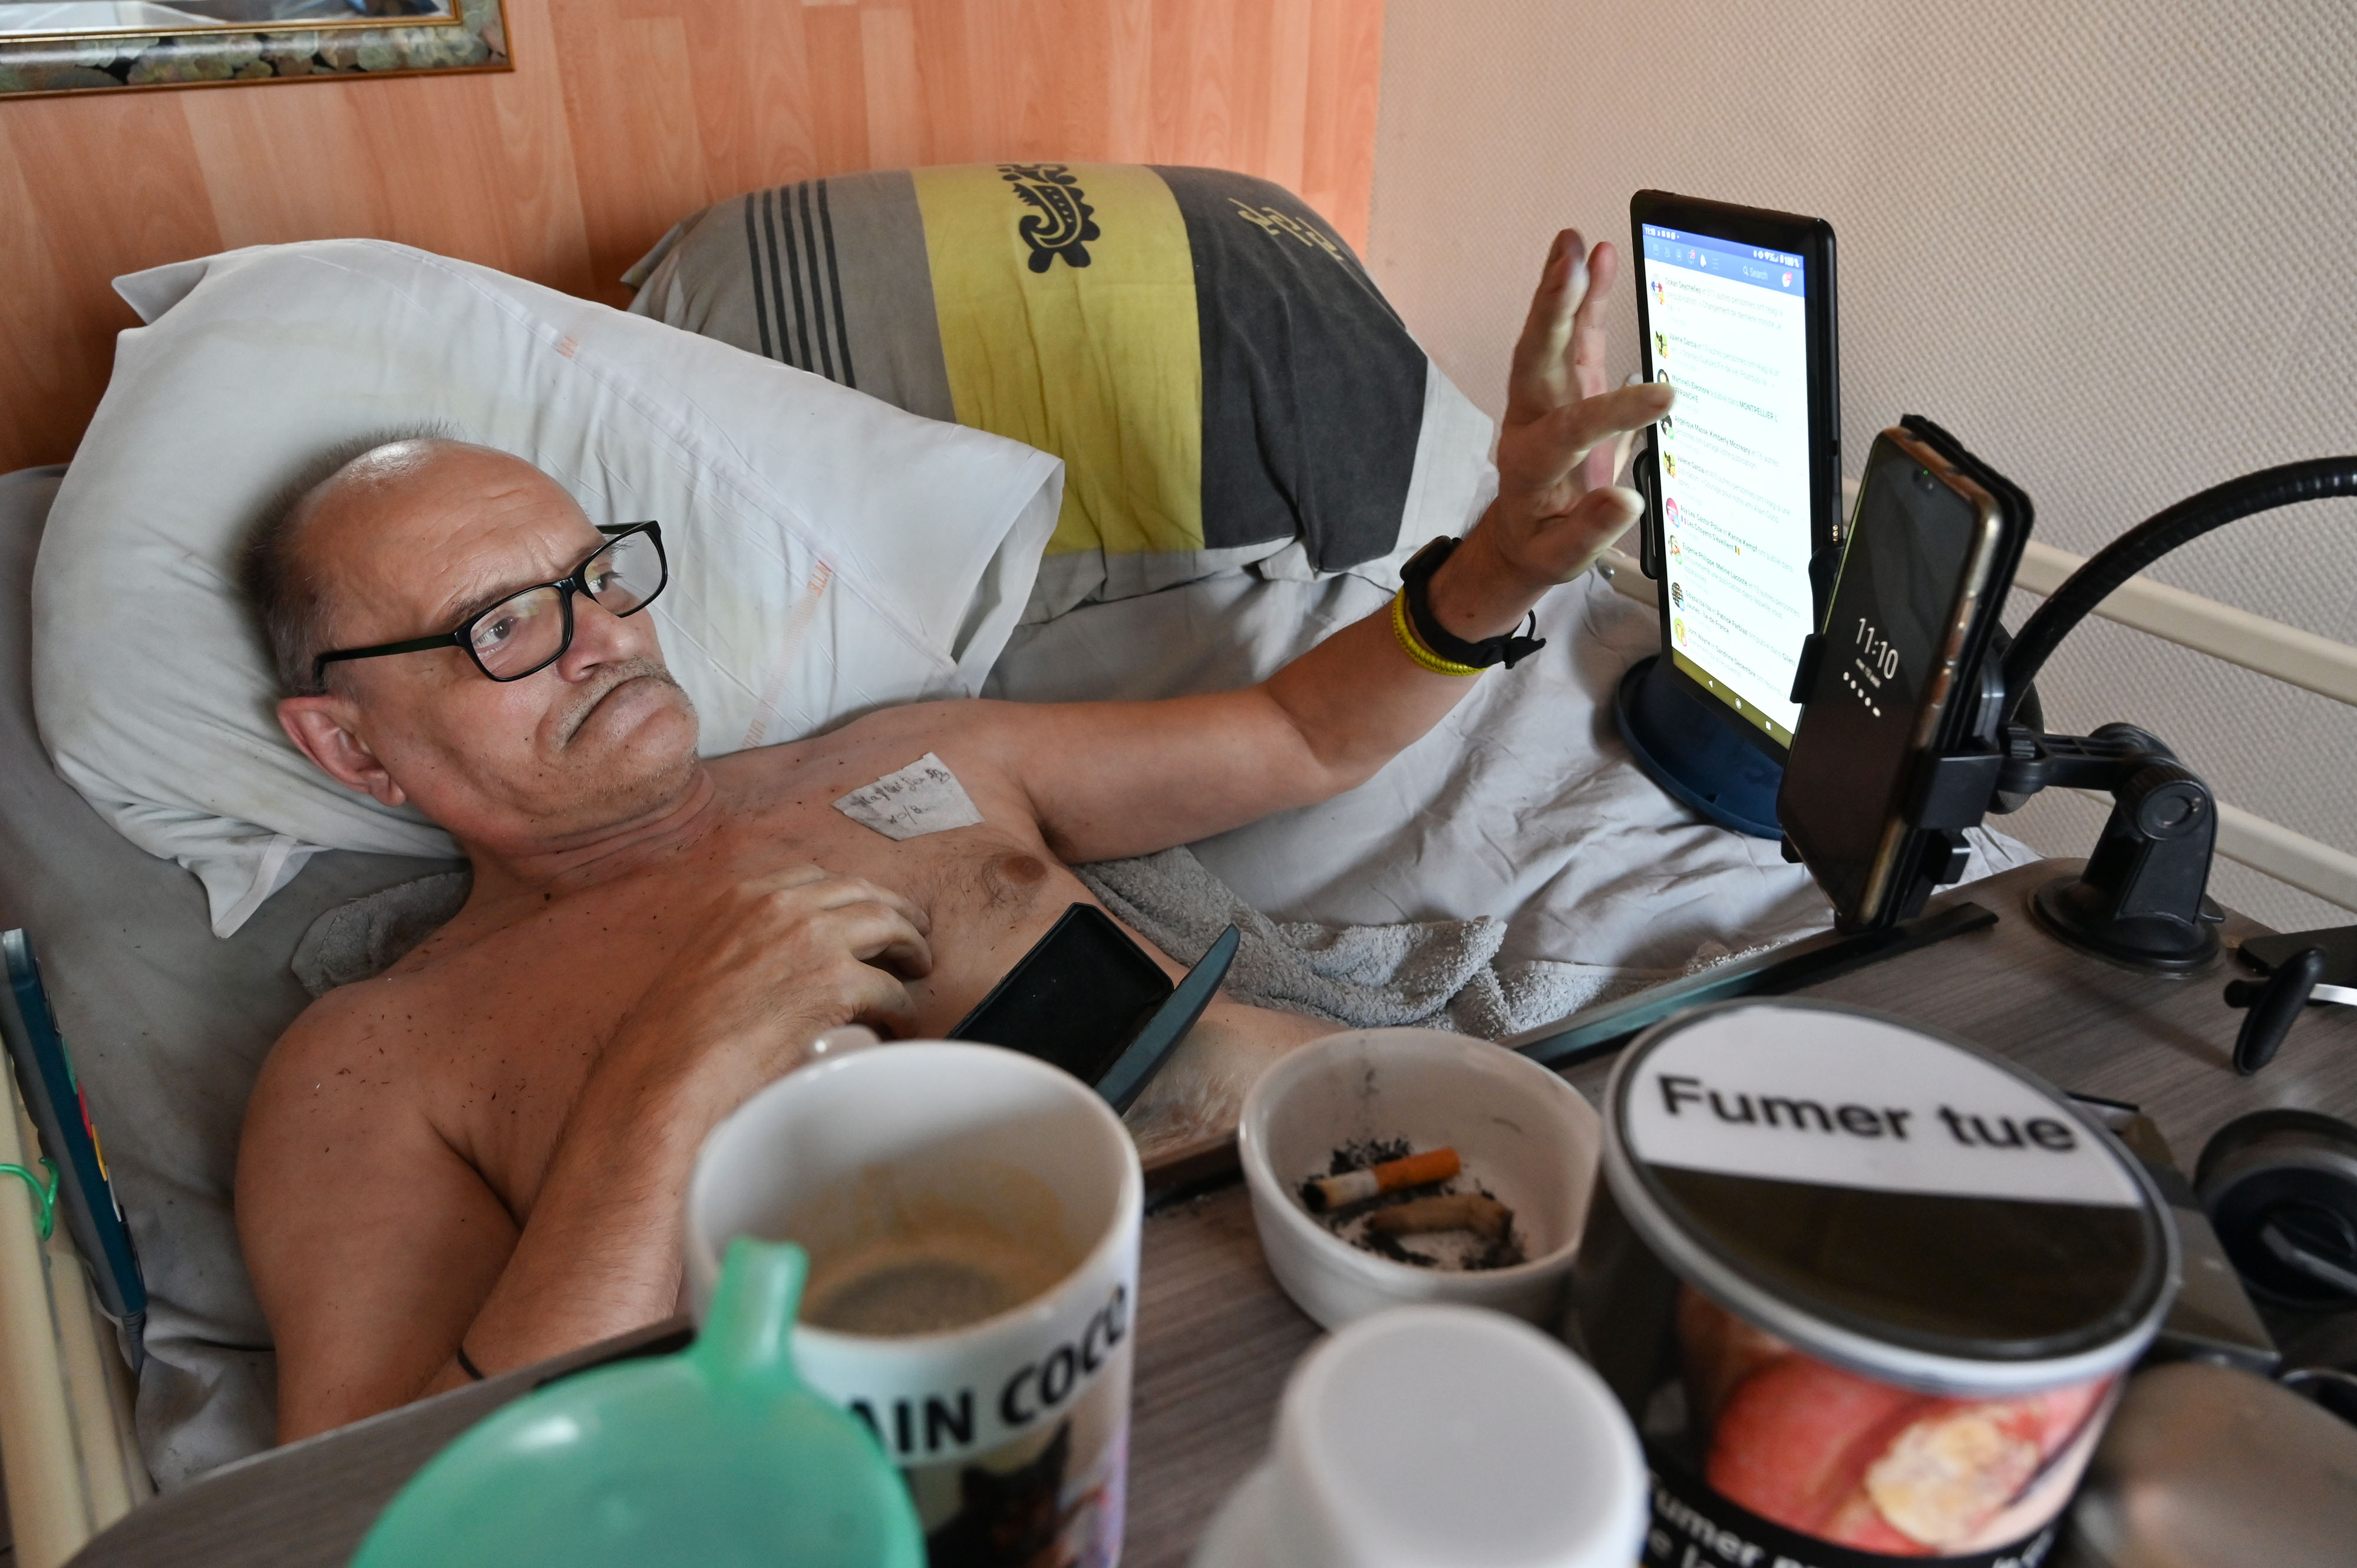 Facebook Blocks Ailing Man's Planned End-of-Life Broadcasts